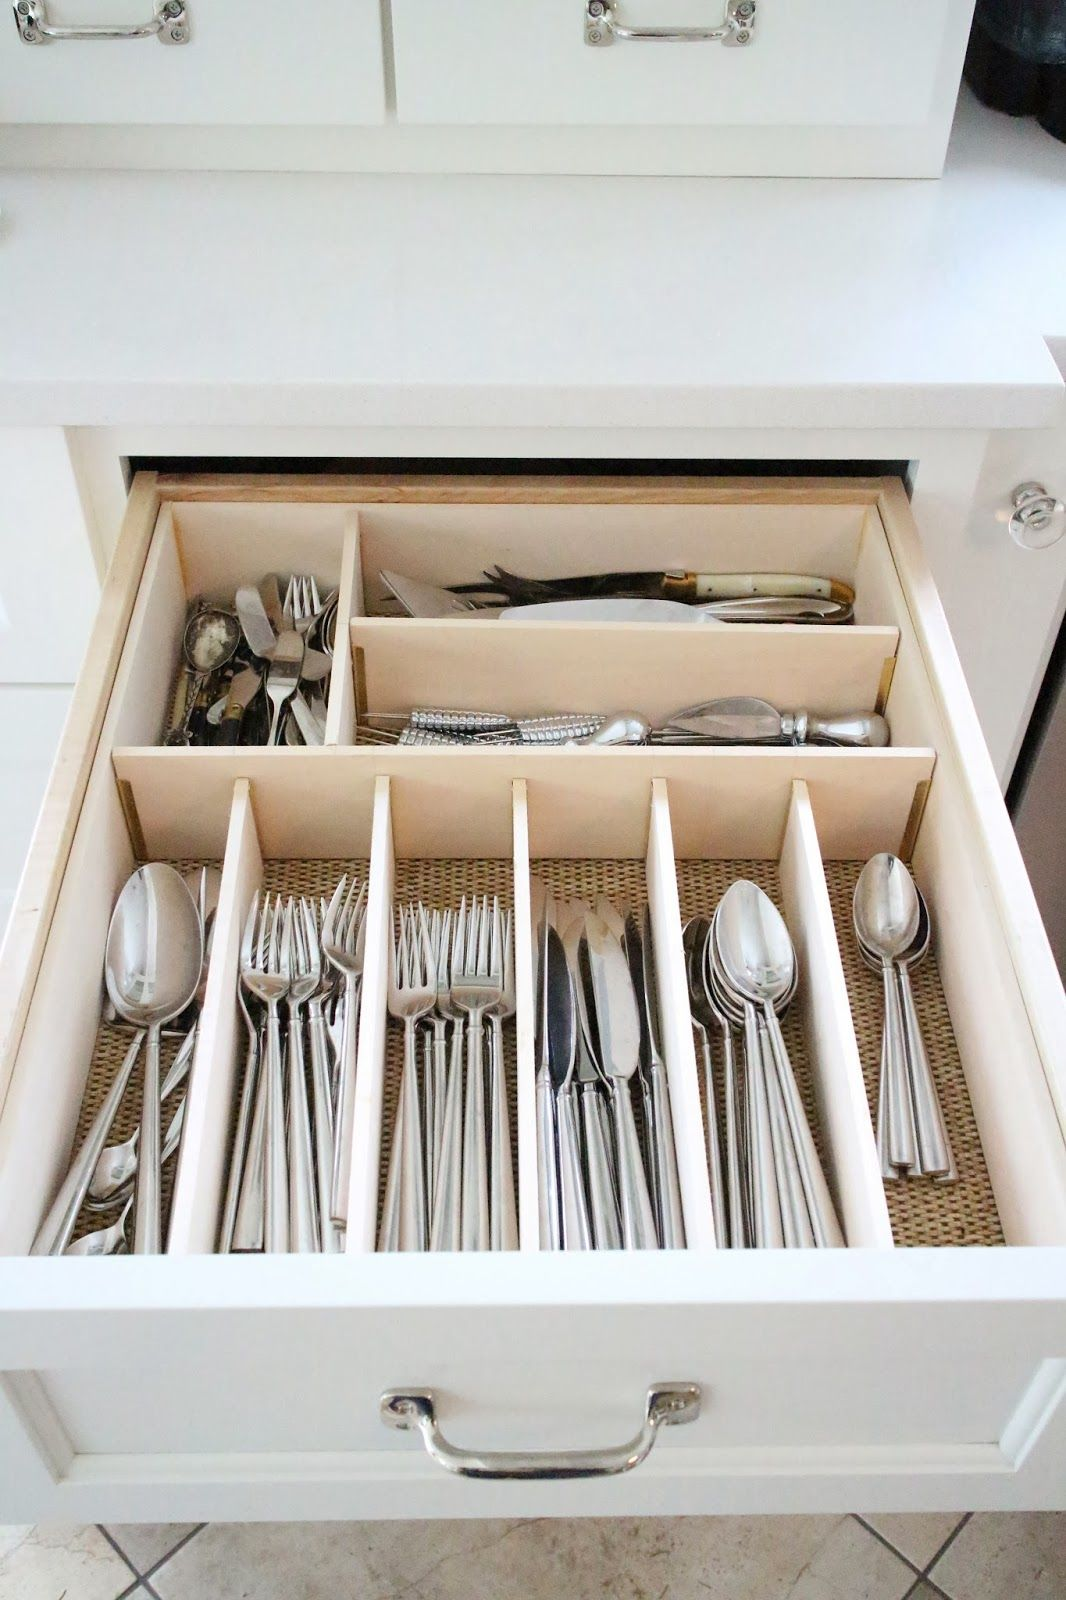 caddy catalouge awer flatware organizer tray divider basket silverware cutlery adorable drawer bamboo expandable utensil kitchen countertop